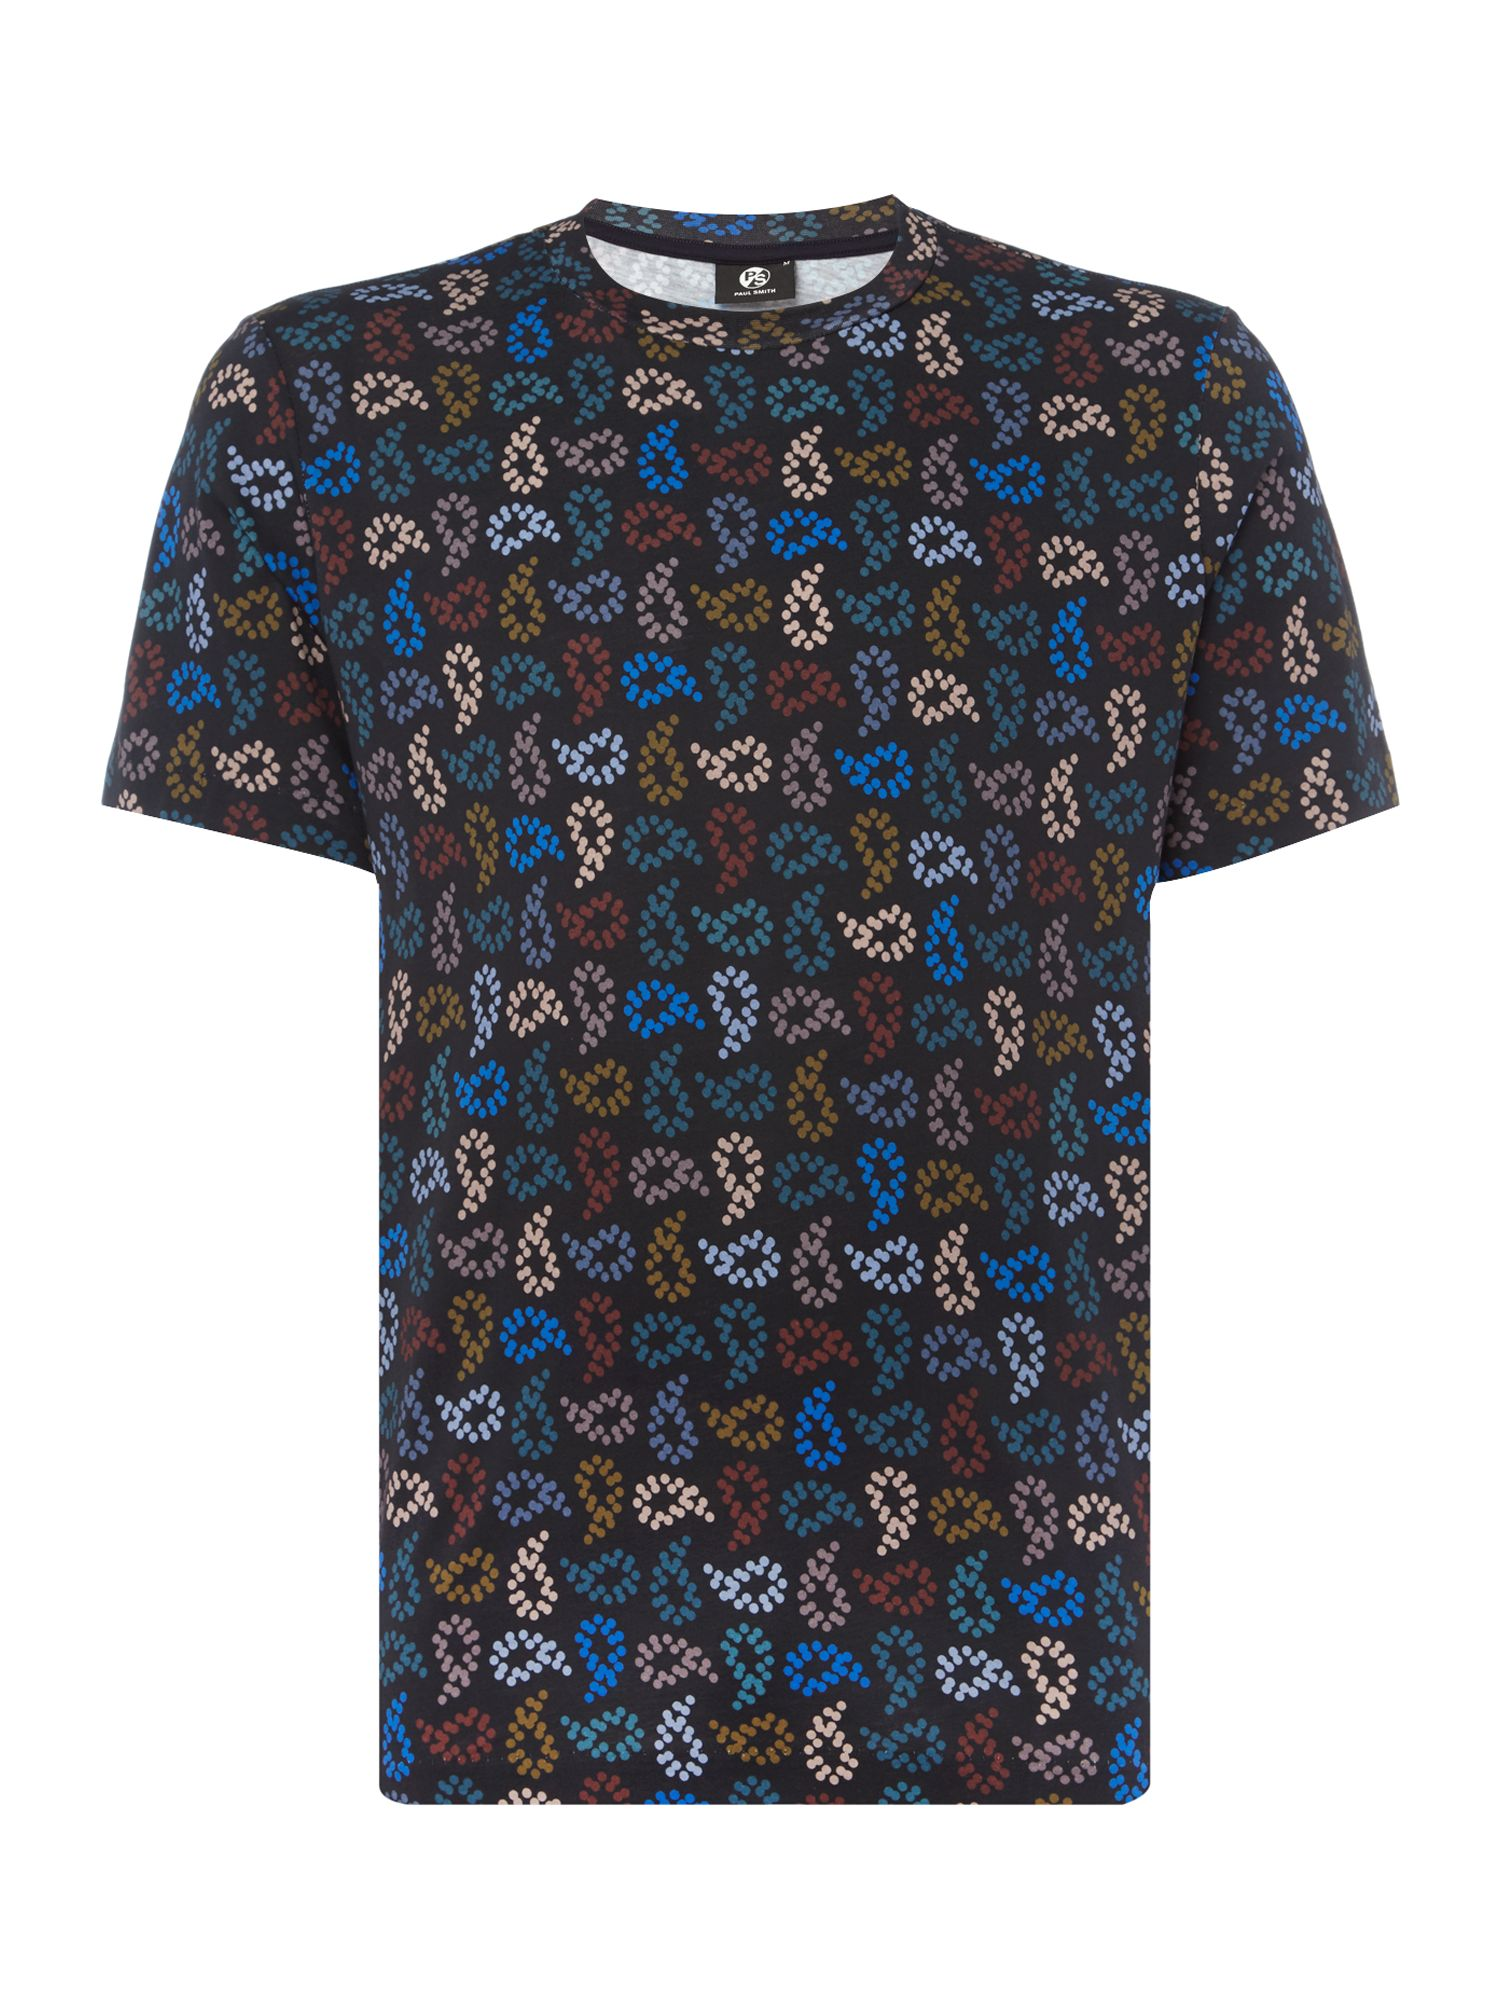 Men's PS By Paul Smith All-over paisley printed t-shirt, Blue